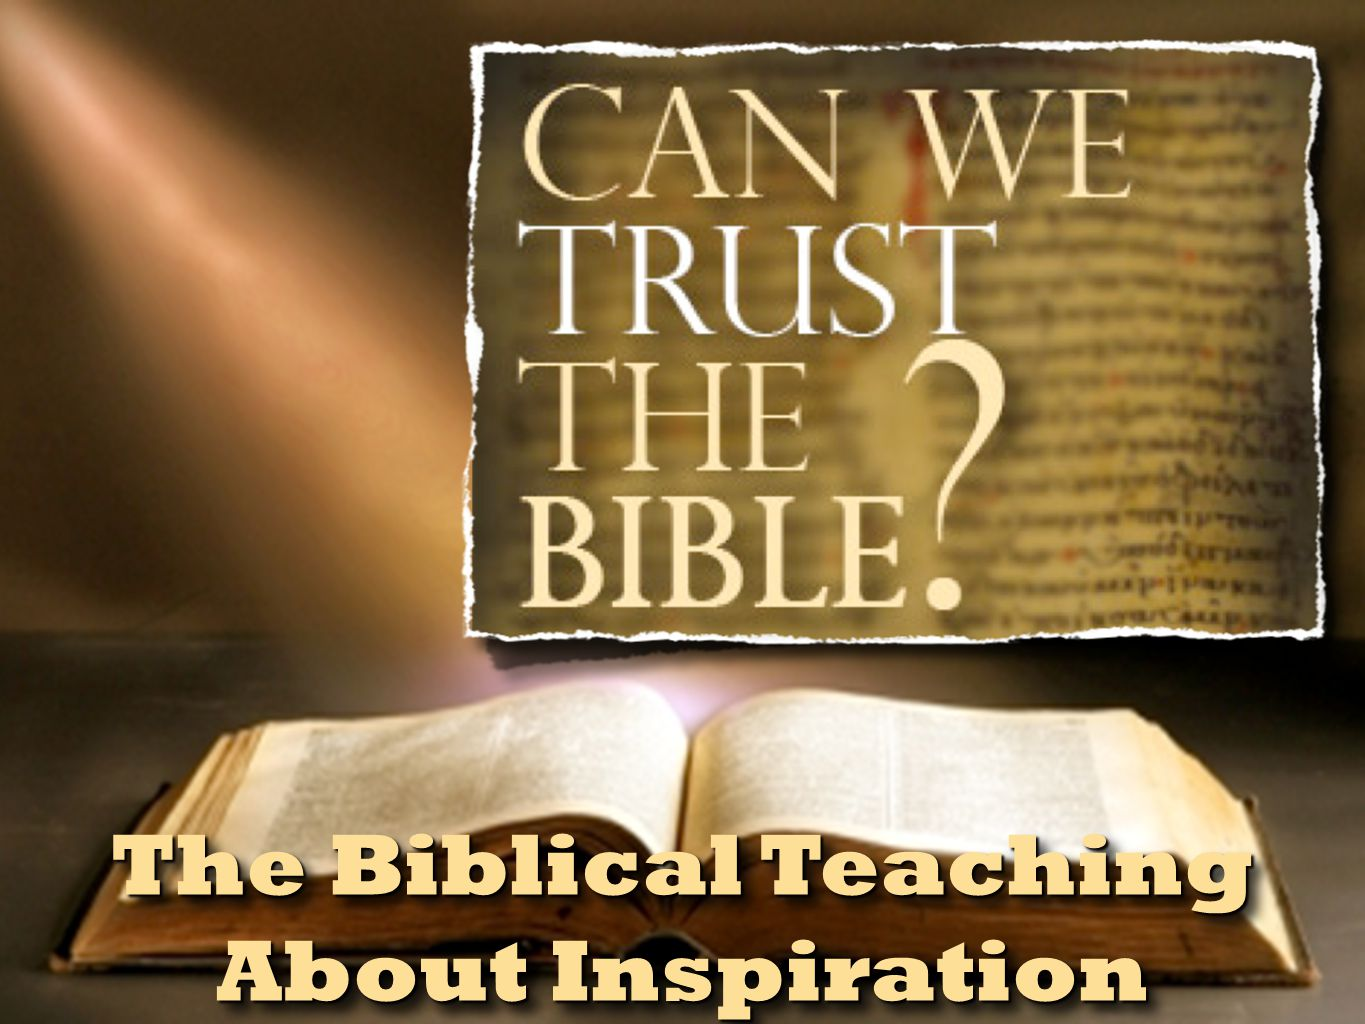 Inspiration Defined The Trustworthiness of The Scriptures 2 Peter 1:20-21 (NKJV) 20 knowing this first, that no prophecy of Scripture is of any private interpretation, 21 for prophecy never came by the will of man, but holy men of God spoke as they were moved by the Holy Spirit.